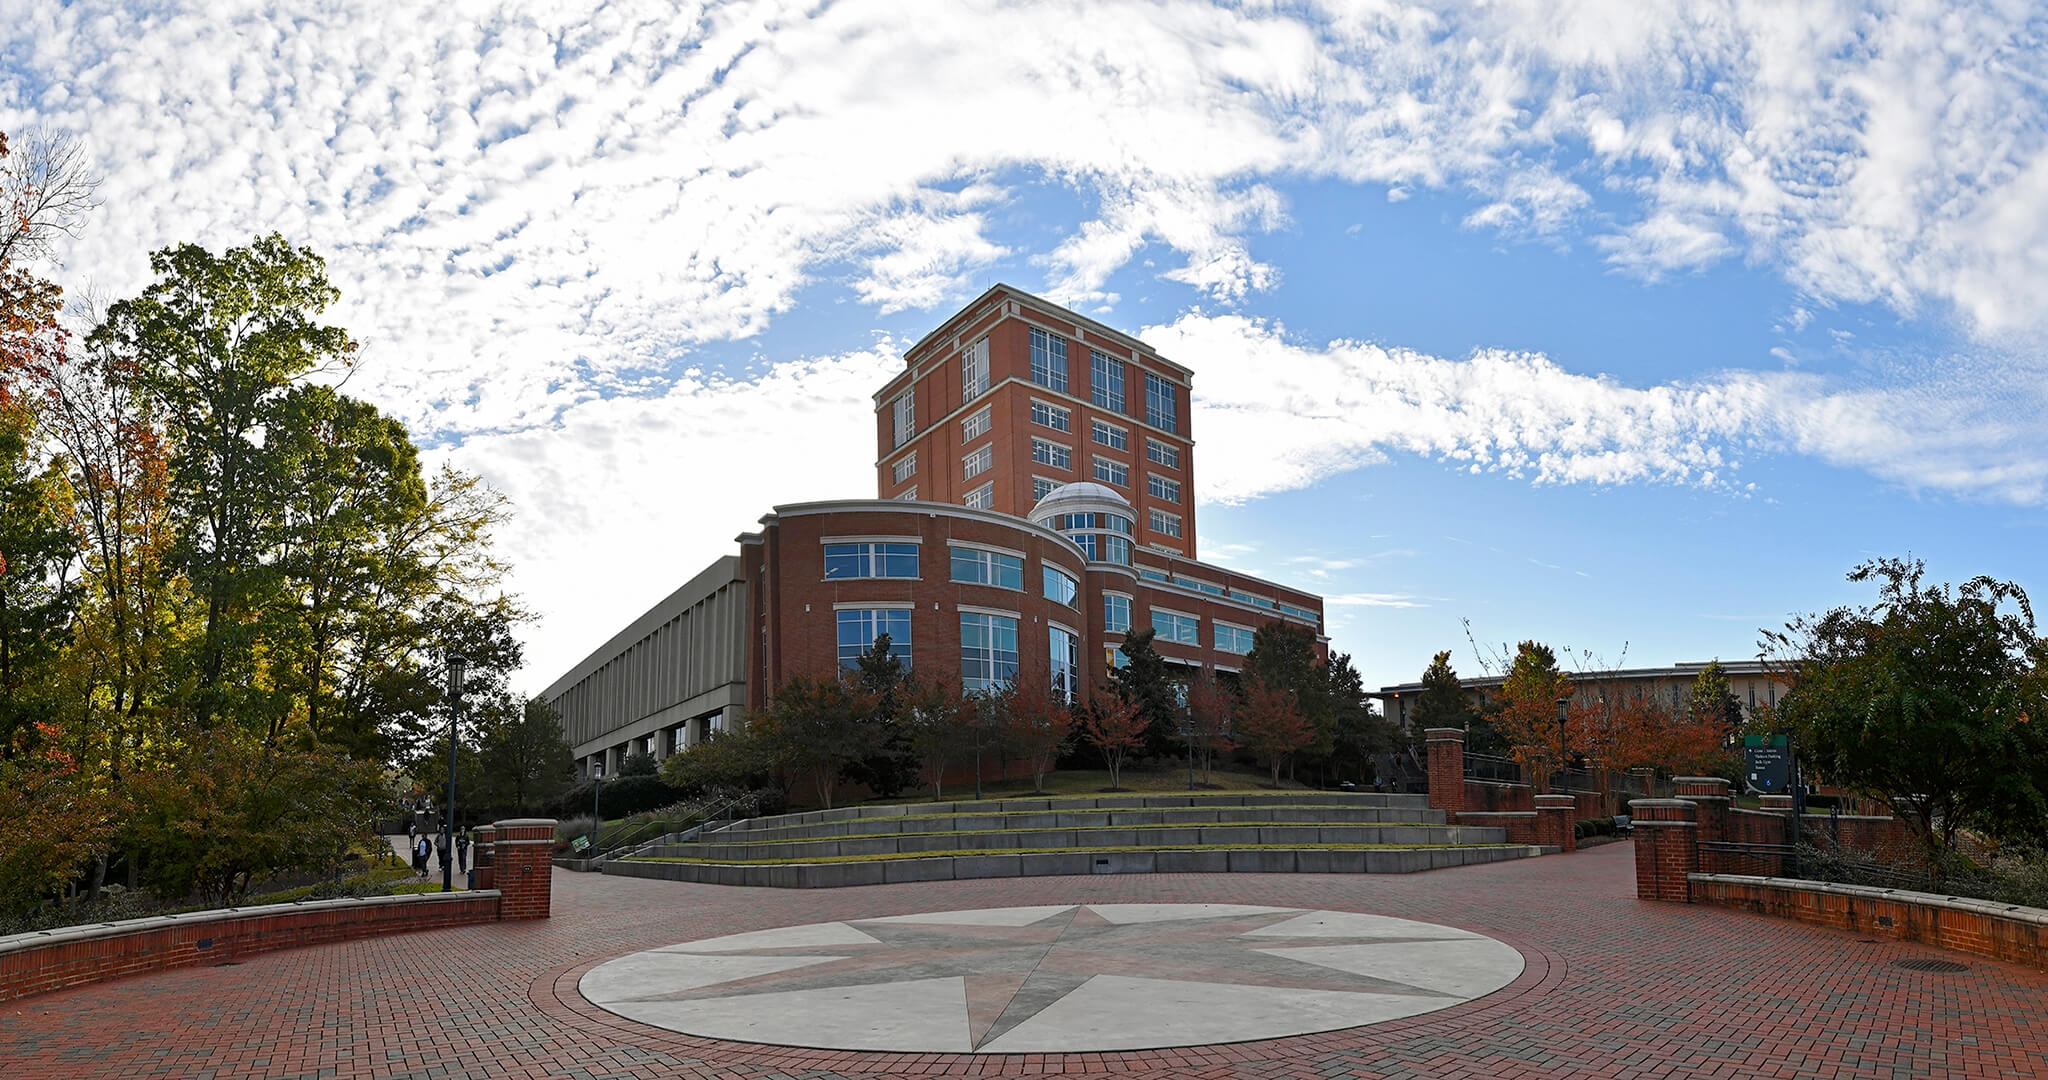 Atkins Library and the Star Quad at UNC Charlotte